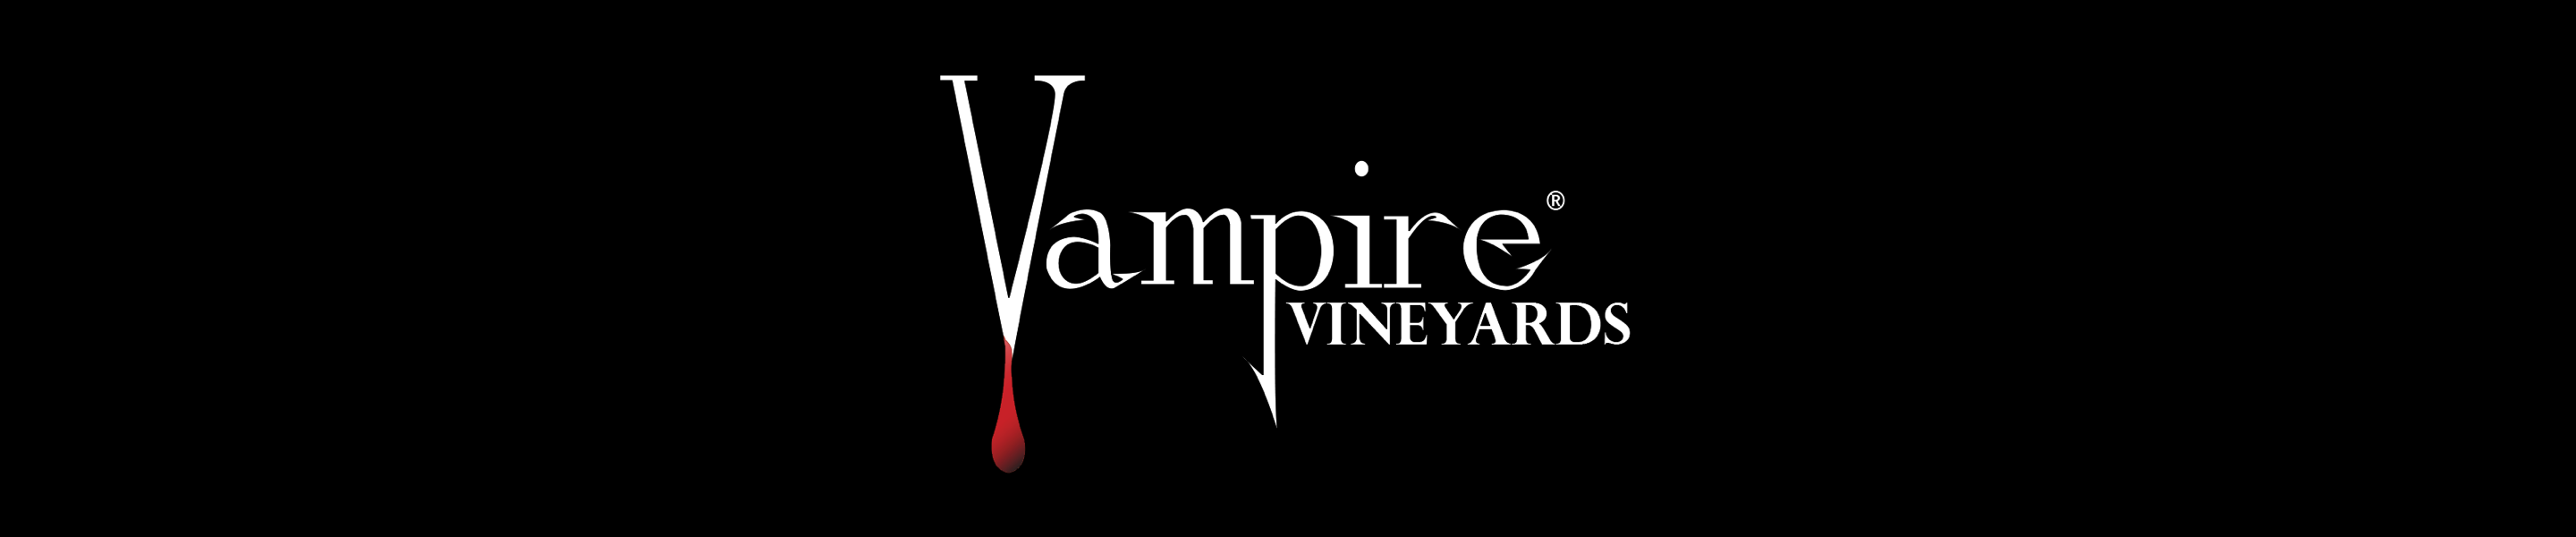 Vampire Vineyards has been crafting high quality wines since 1988.  Our award-winning flagship brand, Vampire Vineyards, is produced in Napa from premium California fruit.  We source our fruit from distinguished vineyards in the most regarded appellations of California.  Our variety of vineyard locations brings together a diverse palette of fruit that allows us to produce rich wines true to varietal character in a modern California style.